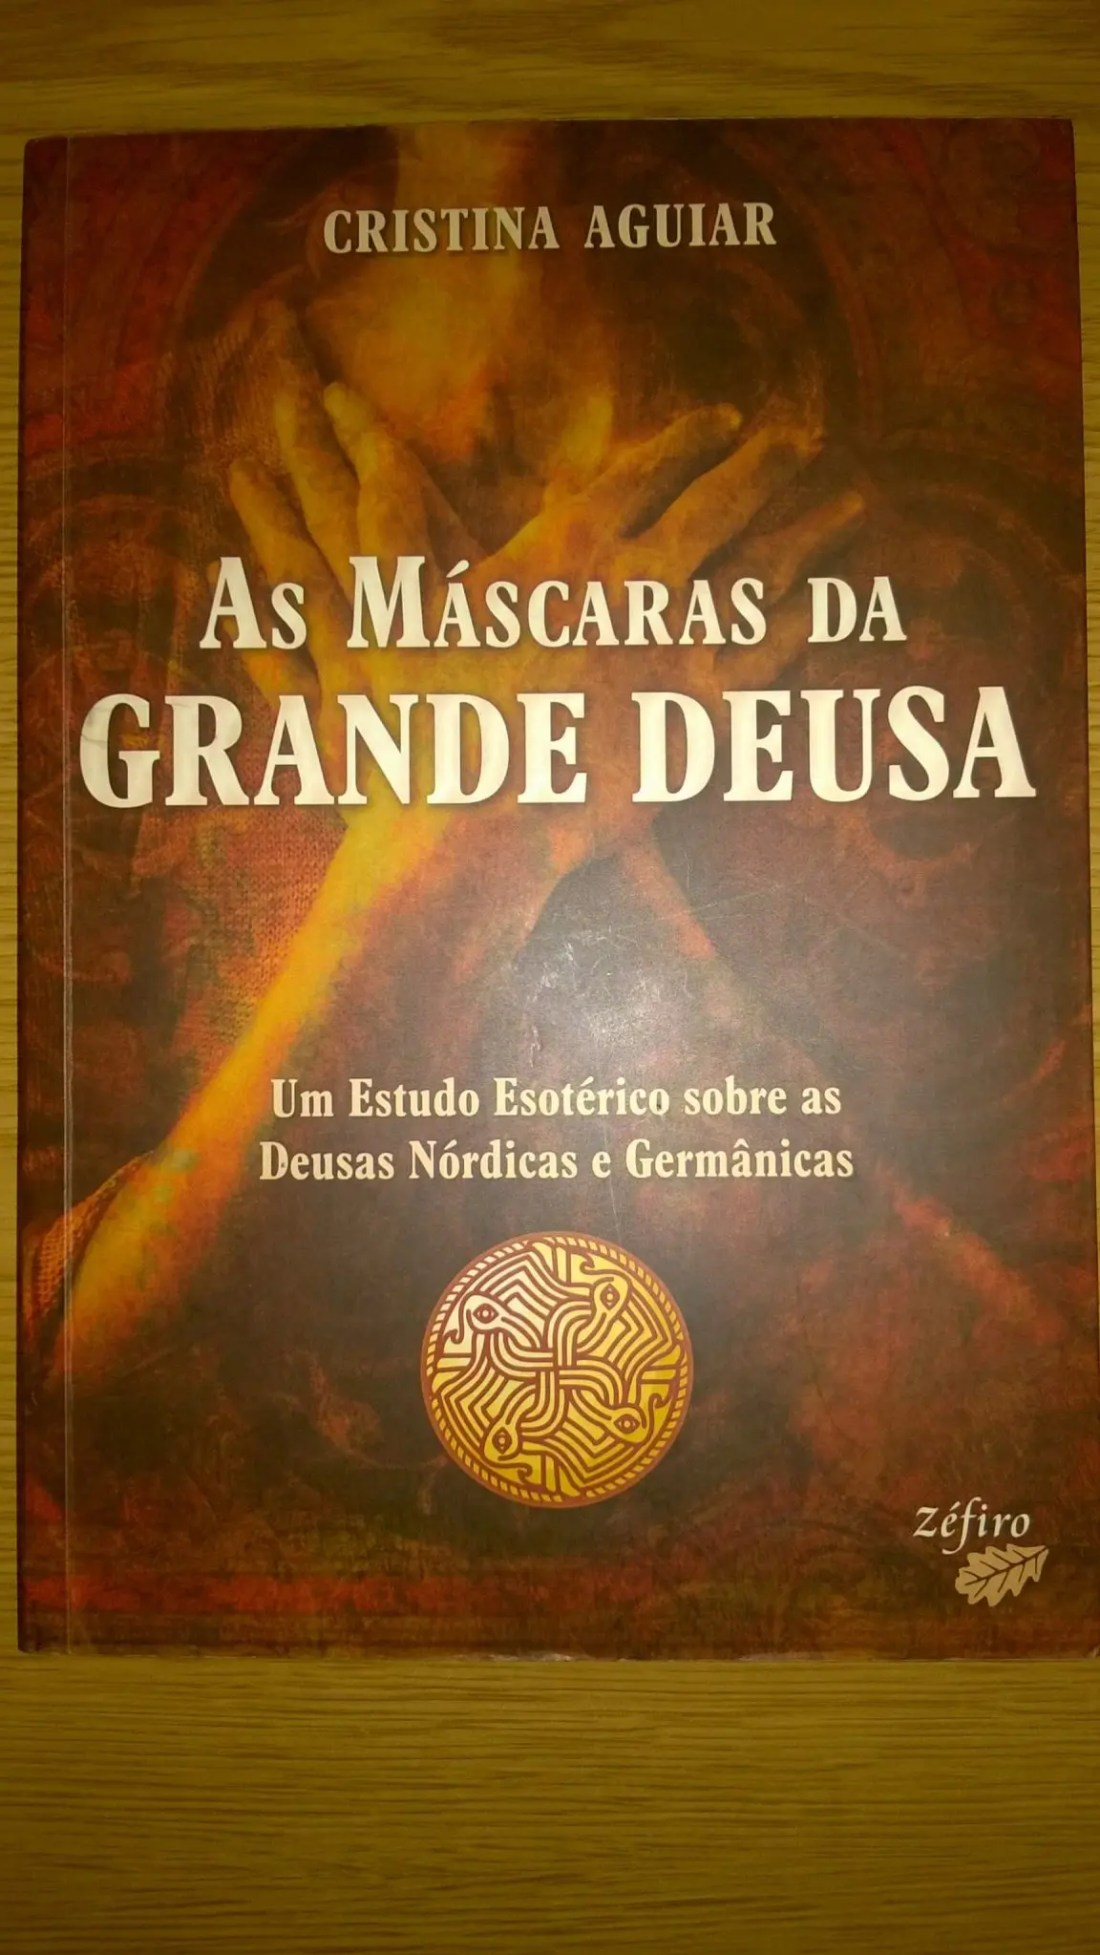 As Máscaras da Grande Deusa